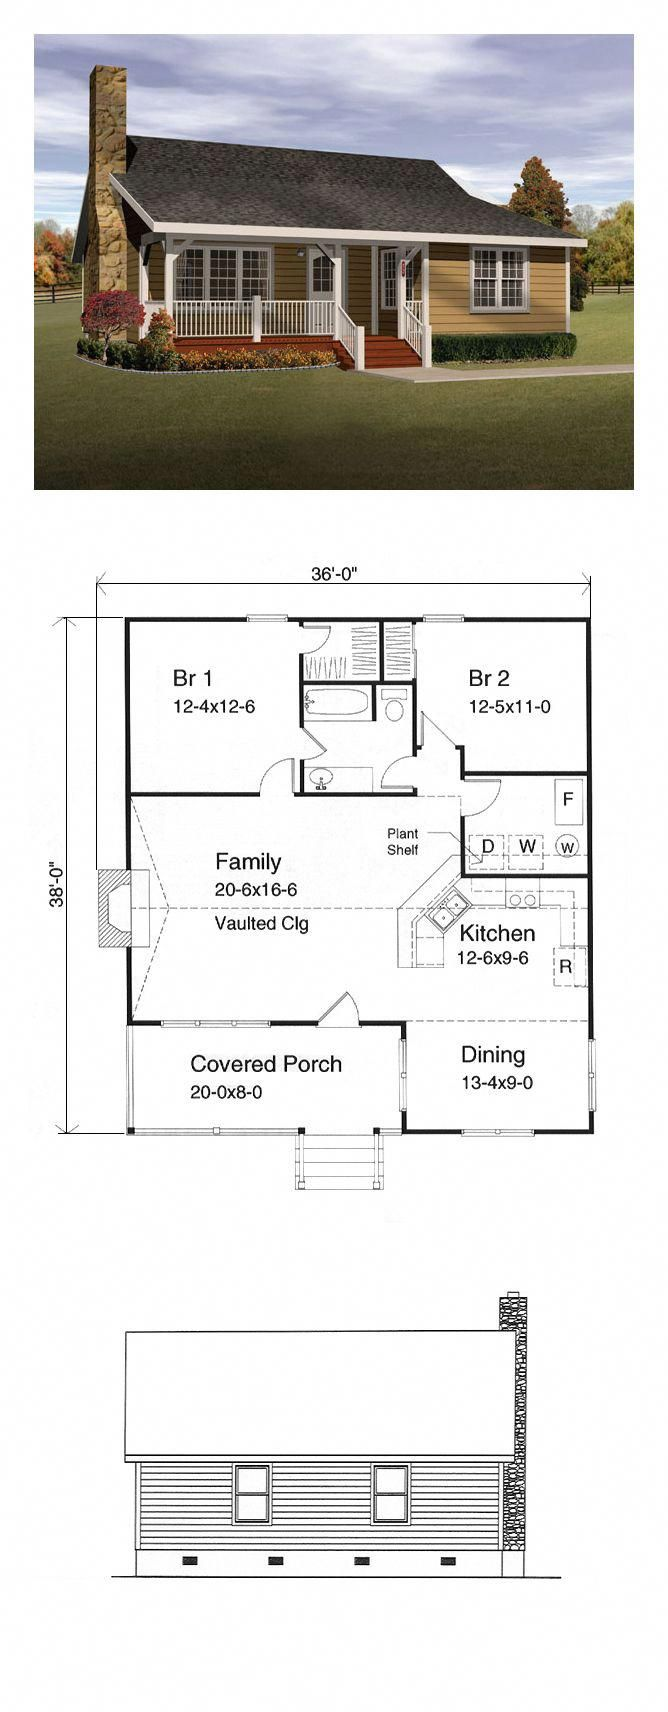 Country Style Cool House Plan Id Chp 15947 Total Living Area 1143 Sq Ft 2 Bedrooms And 1 Ba Ranch Style House Plans Best House Plans Cottage Floor Plans